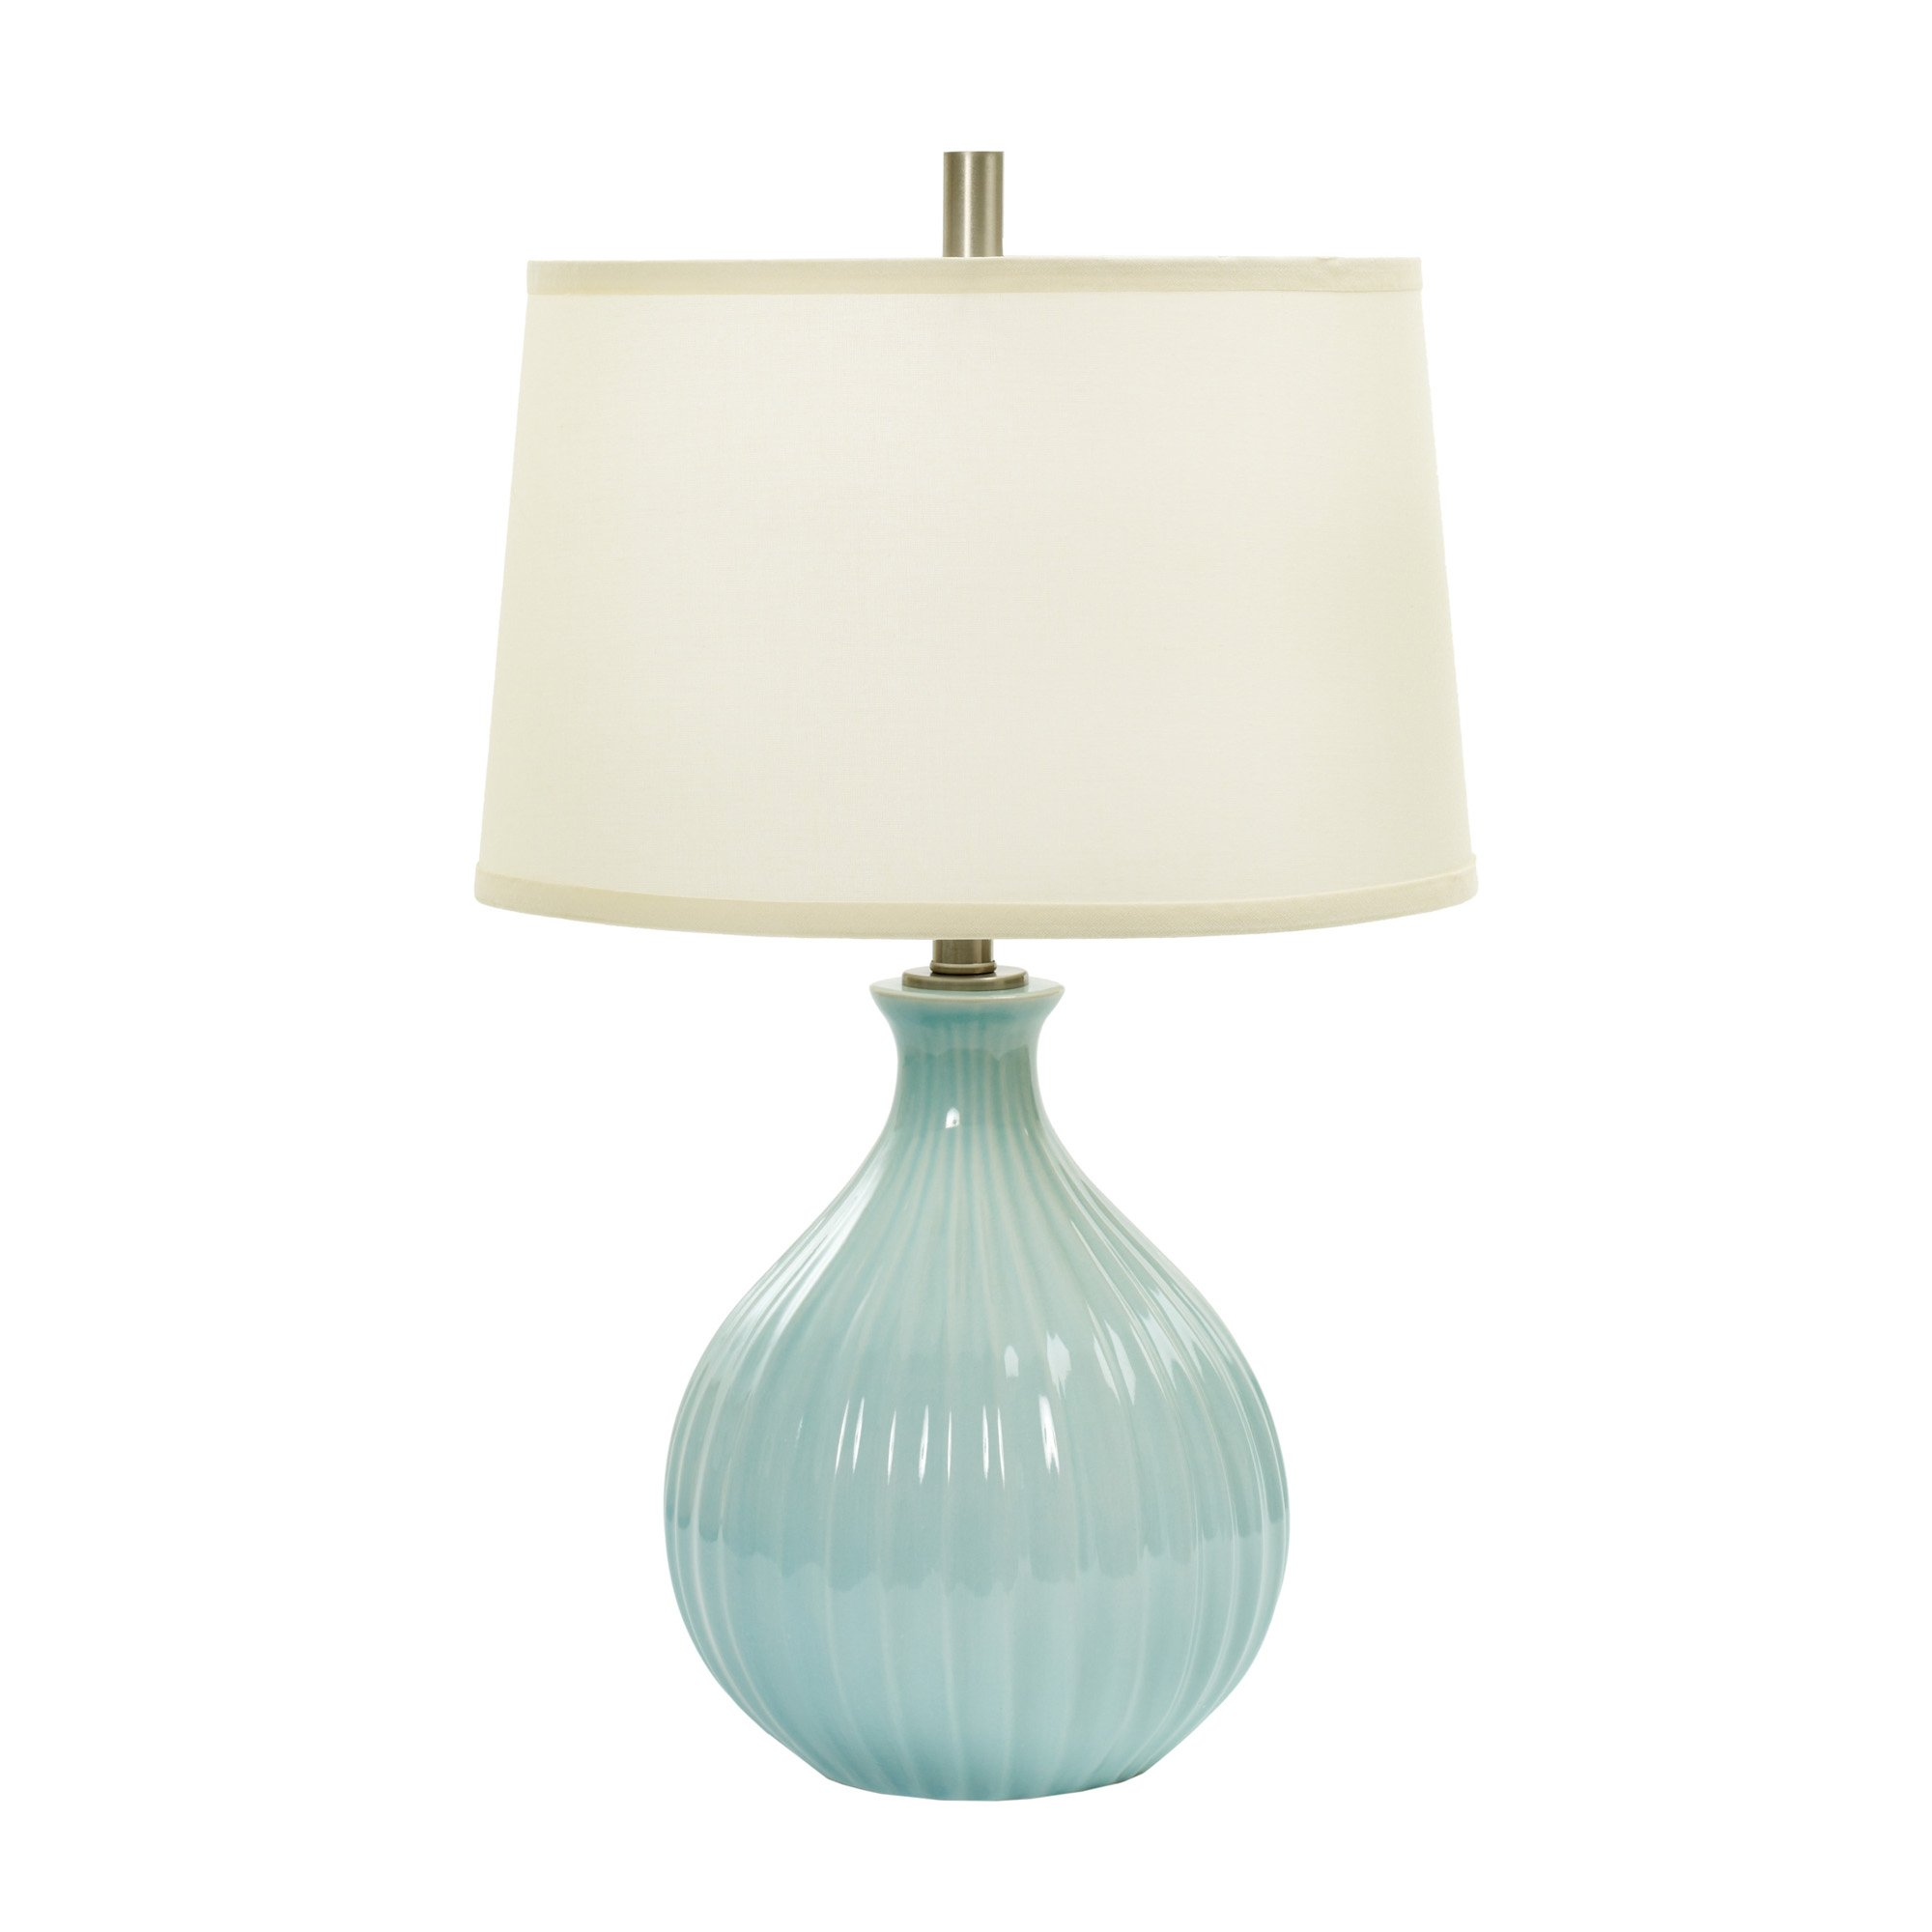 Fangio Lighting W-MR8907SPA BLUE CR 26'' Ceramic Table Lamp with Ripple Design, Spa Blue Crackle